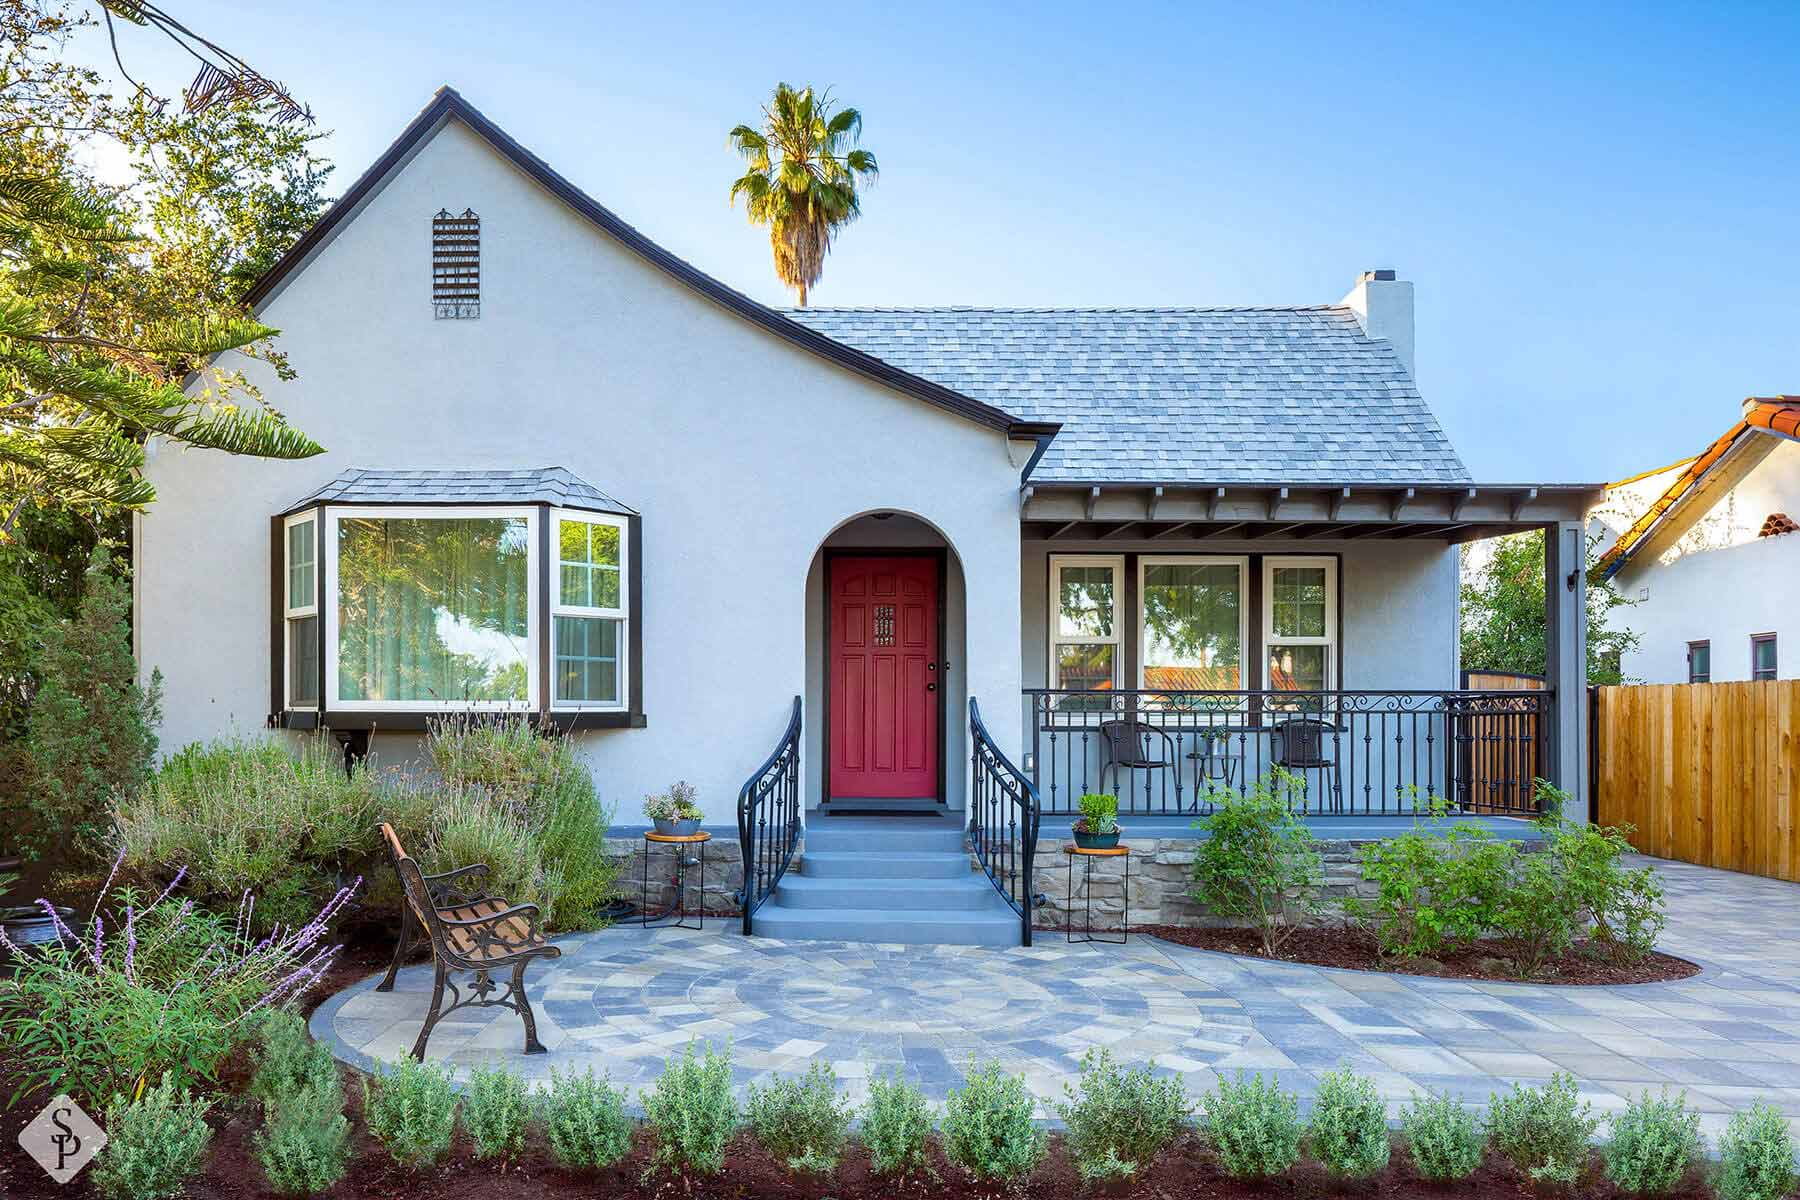 Curb appeal is so important for anyone who is wanting to increase the value of their home or make a lasting impression in their neighborhood. But what is curb appeal?